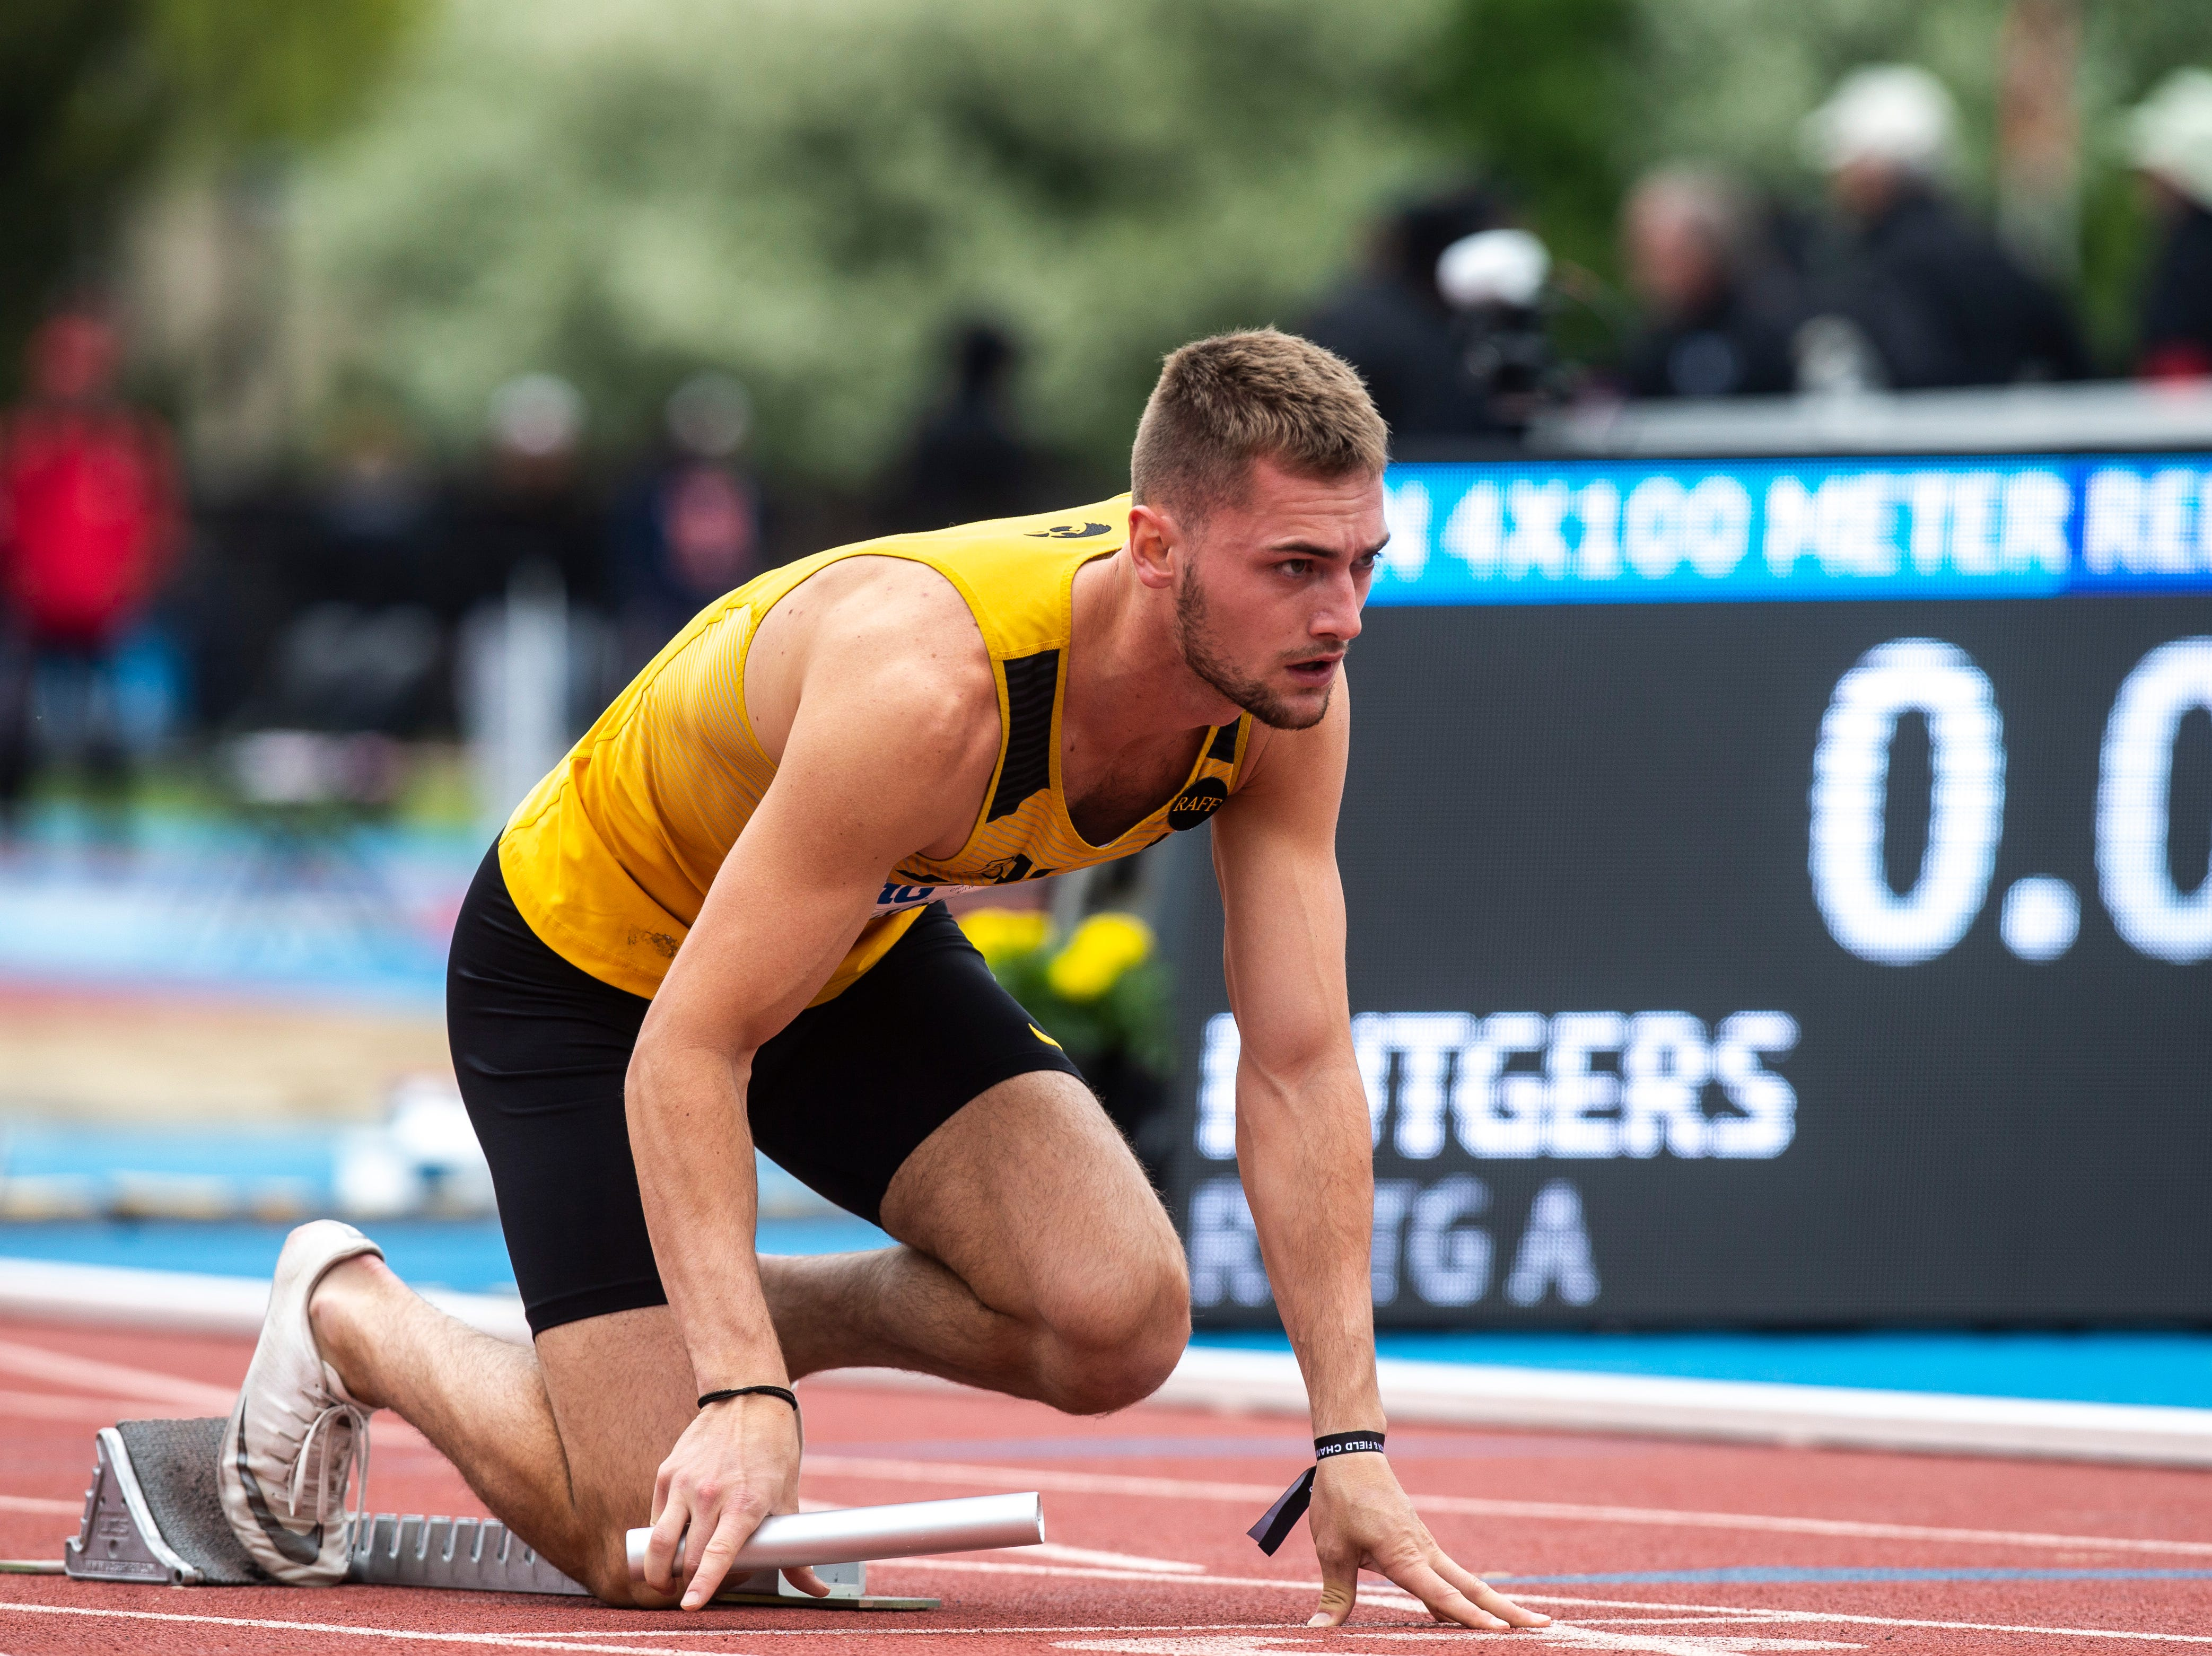 Iowa's Collin Hofacker gets ready on the blocks before the 4x100 meter relay during the final day of Big Ten track and field outdoor championships, Sunday, May 12, 2019, at Francis X. Cretzmeyer Track on the University of Iowa campus in Iowa City, Iowa.